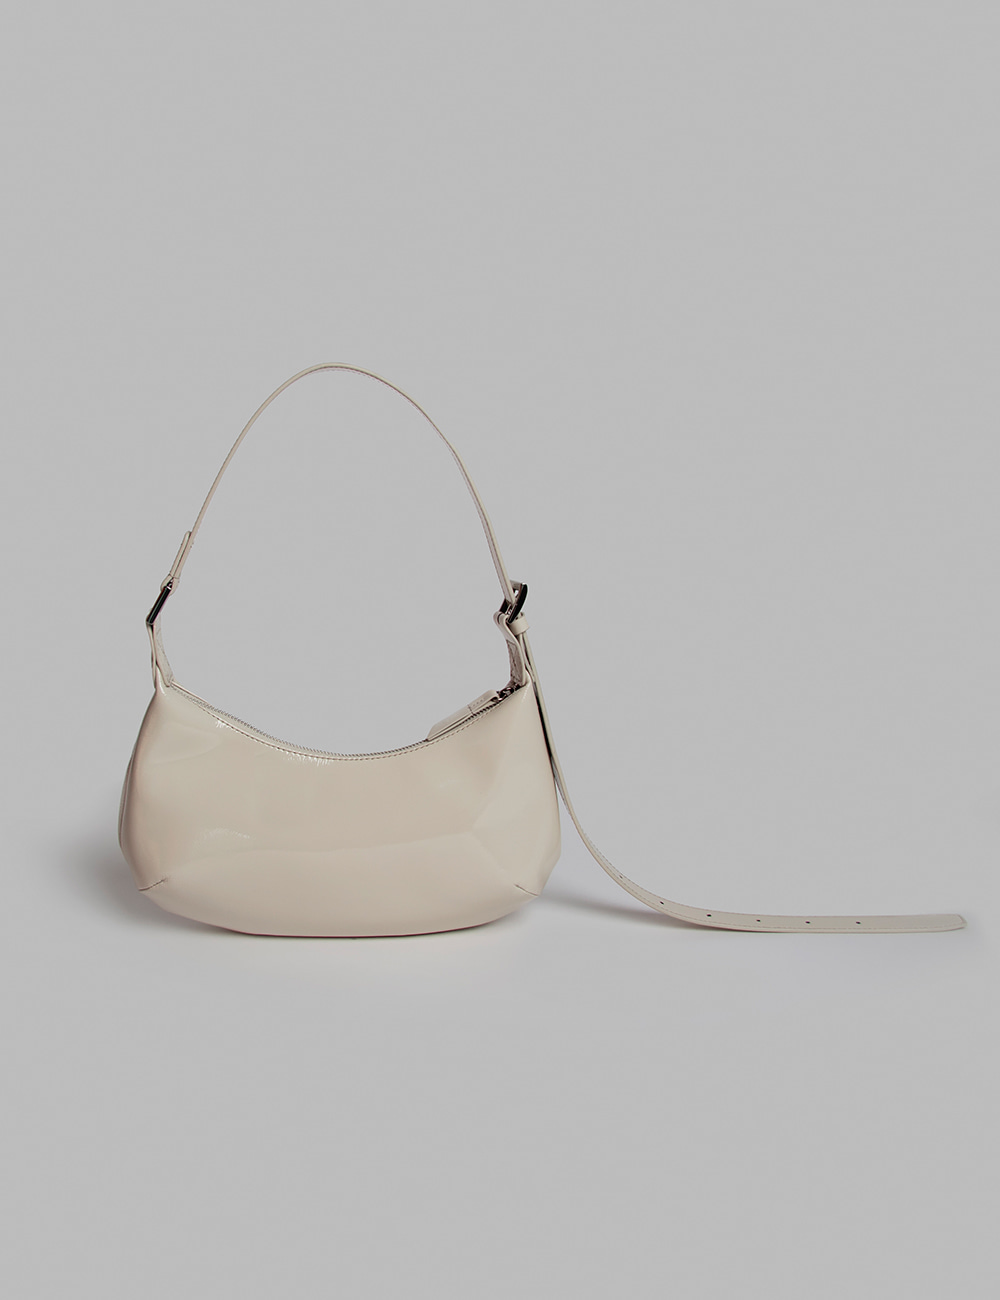 MAISON246,[21'ss 246 신상 가방]246 RIE BAG_IVORY,No.246